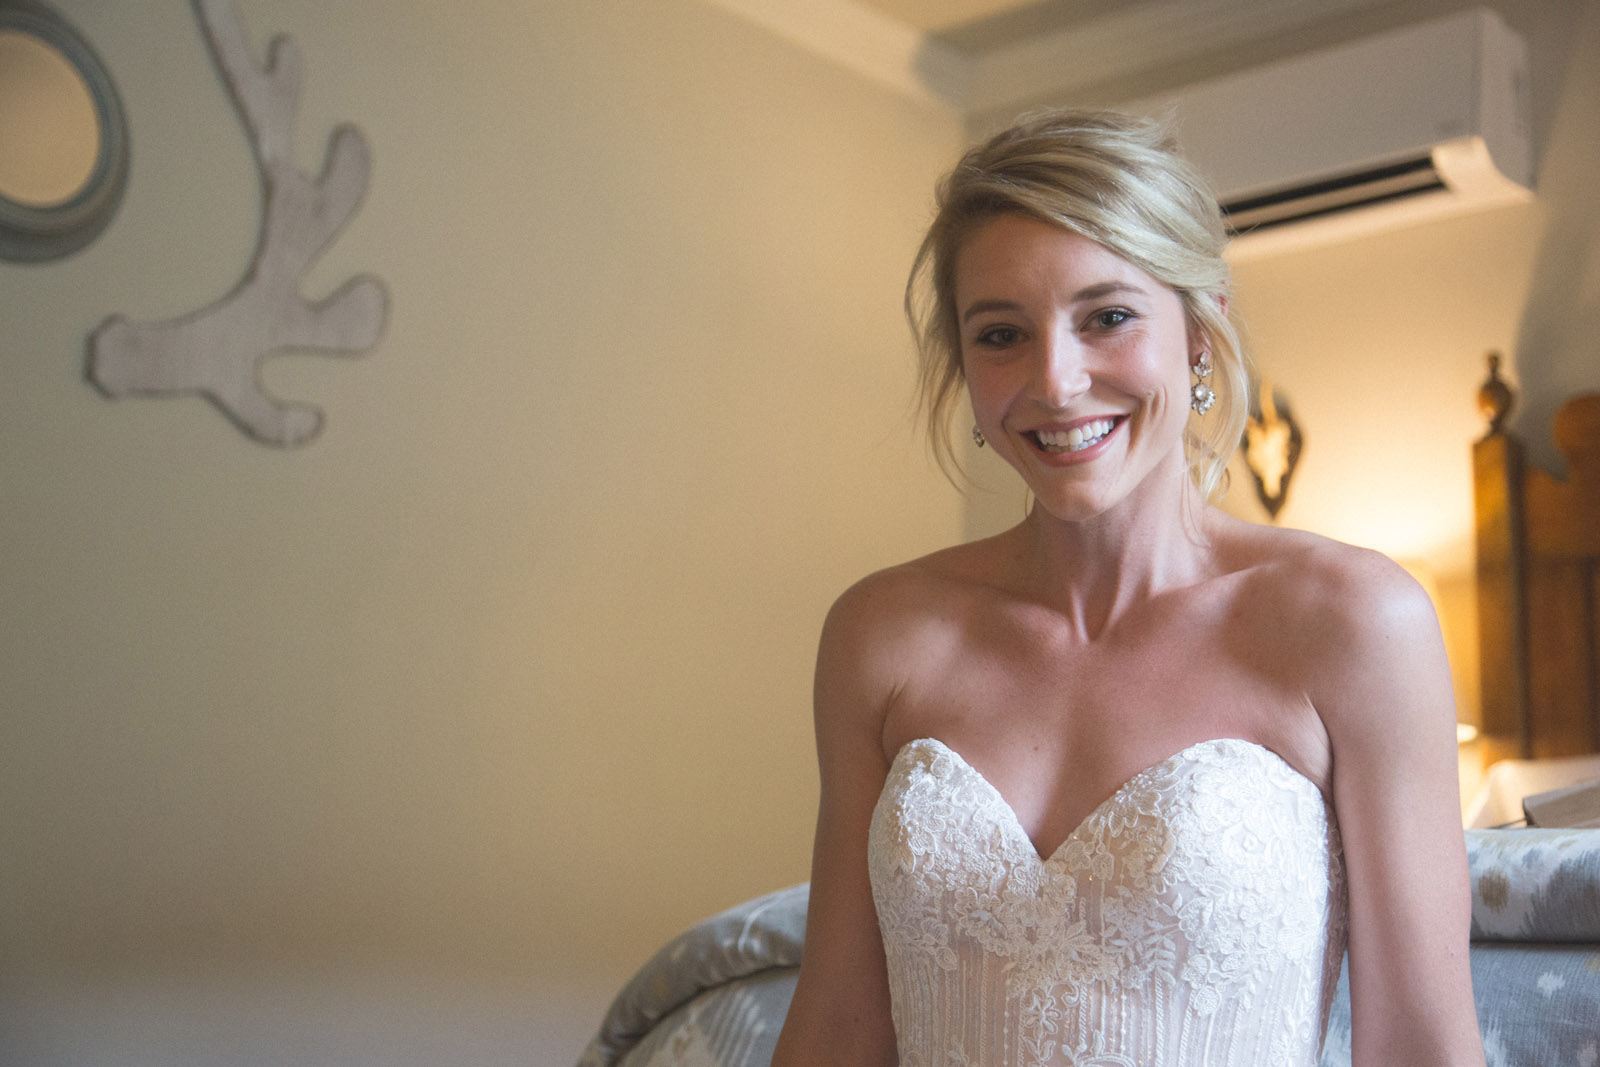 030-bride-smiling-before-the-elopement-wedding-ceremony